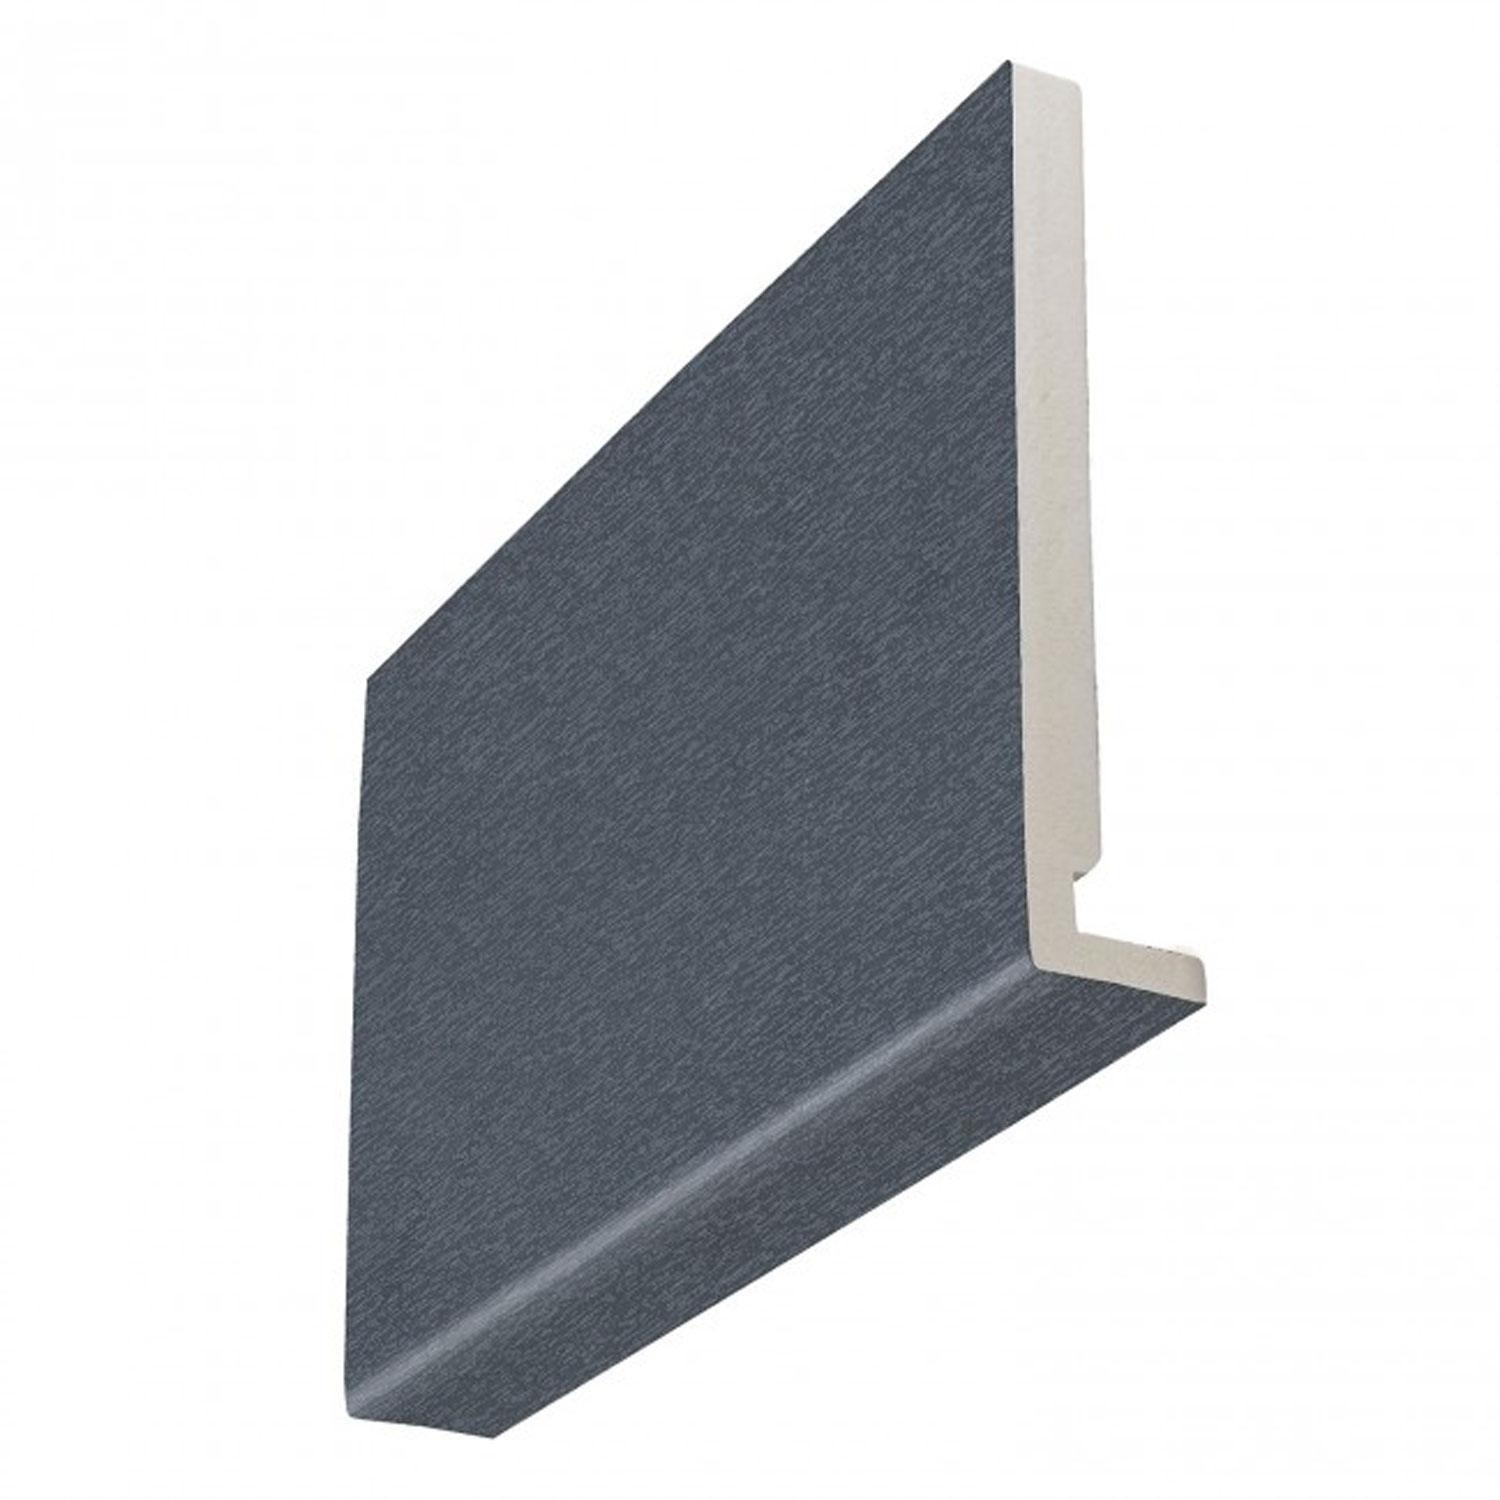 16mm Square Anthracite Grey Woodgrain Fascia Boards